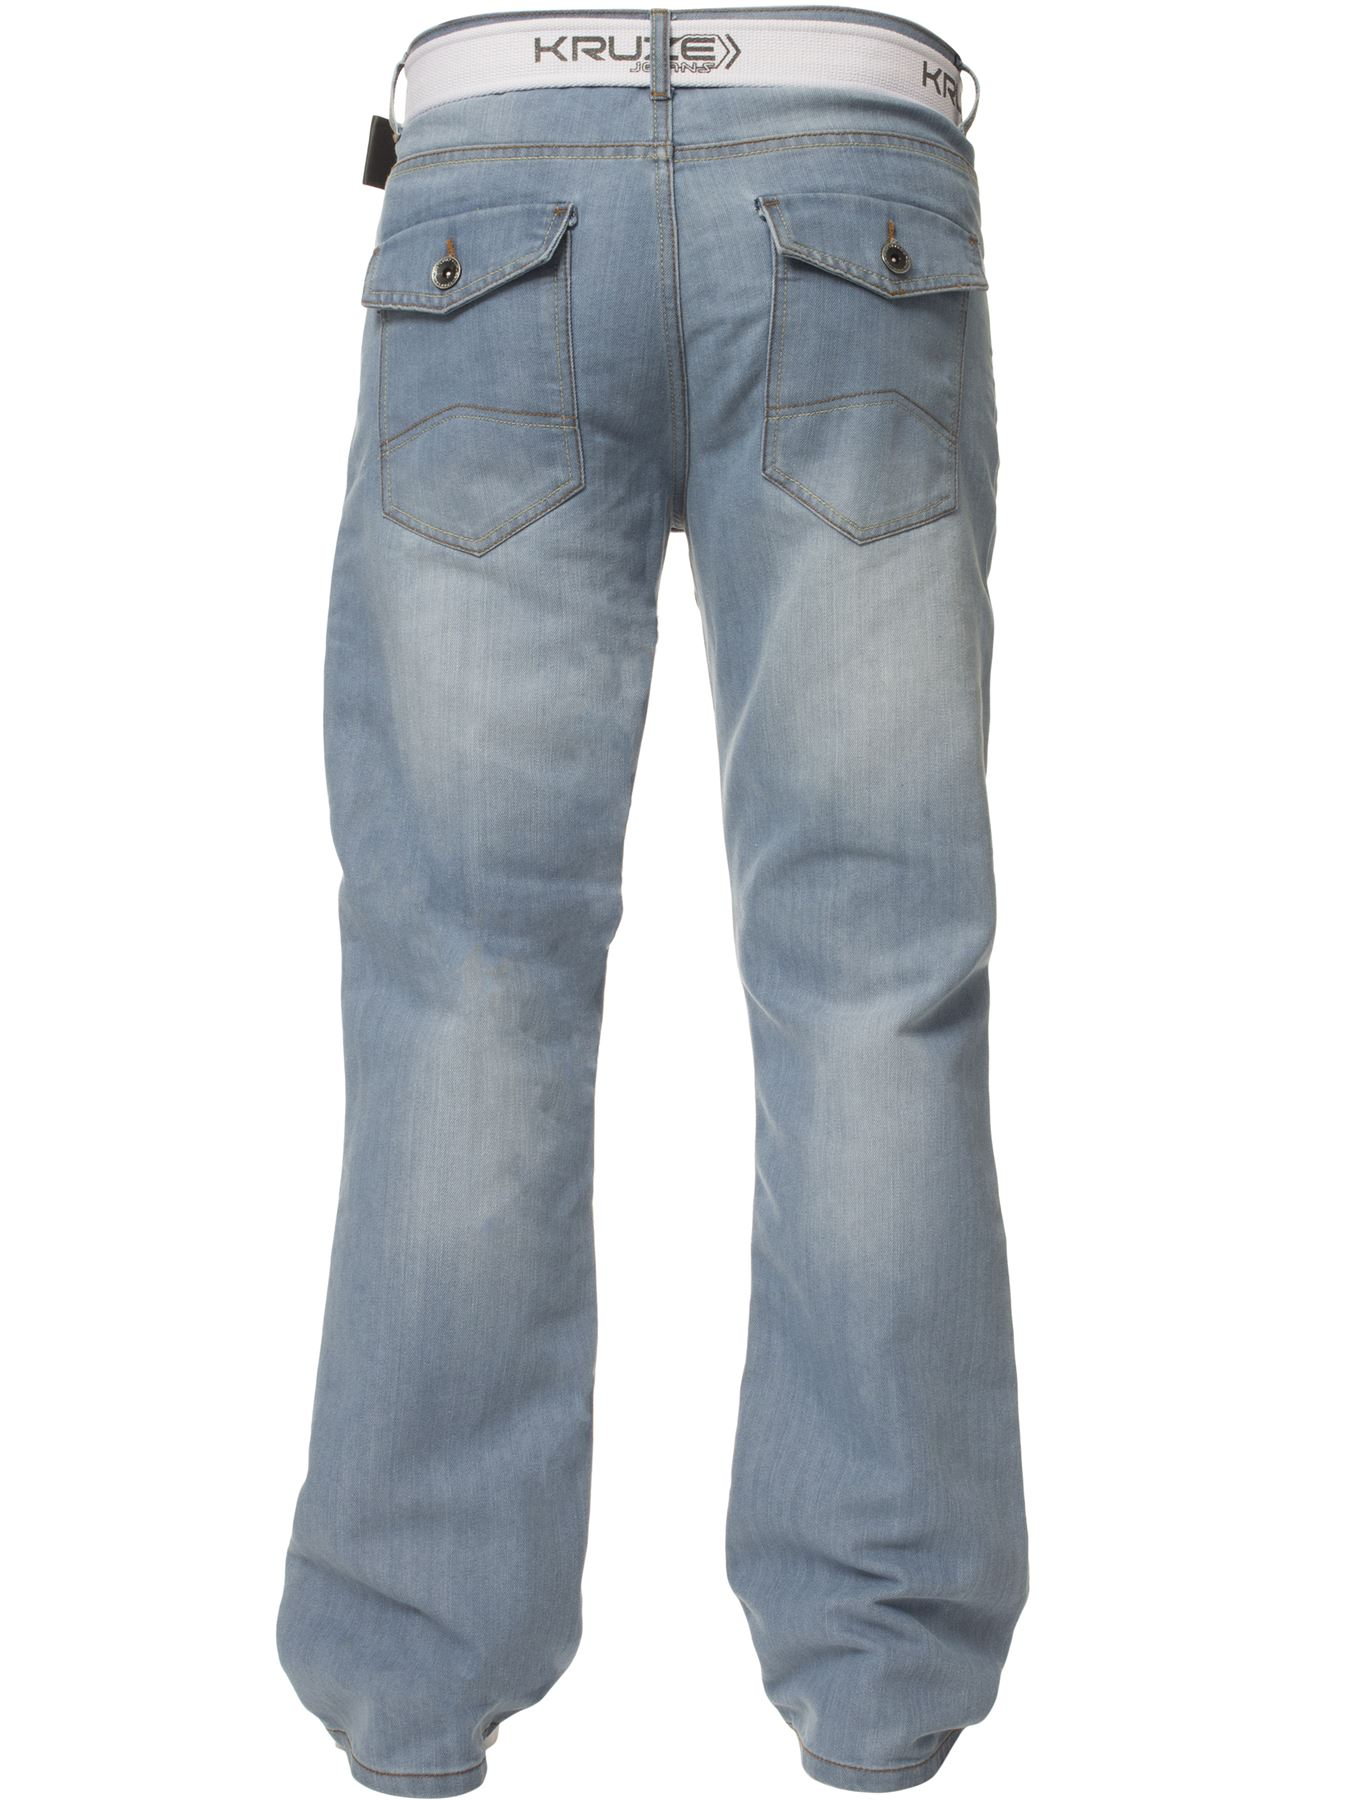 Kruze-Mens-Bootcut-Jeans-Flared-Wide-Leg-Denim-Pants-Big-Tall-King-All-Waists thumbnail 13